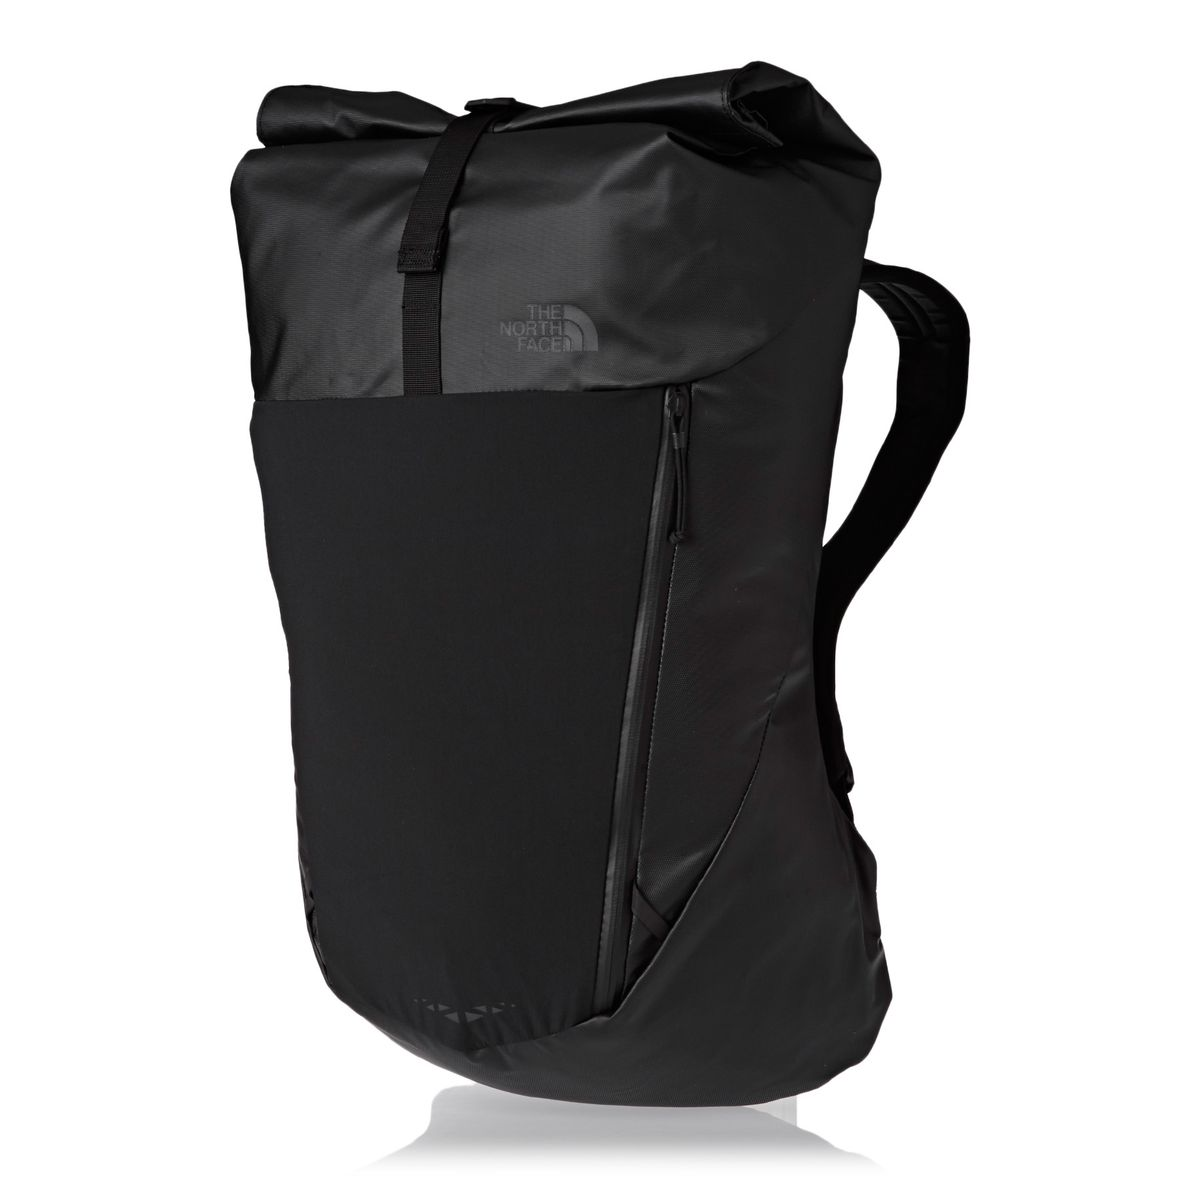 the-north-face-backpacks-the-north-face-peckham-27l-backpack-tnf-black